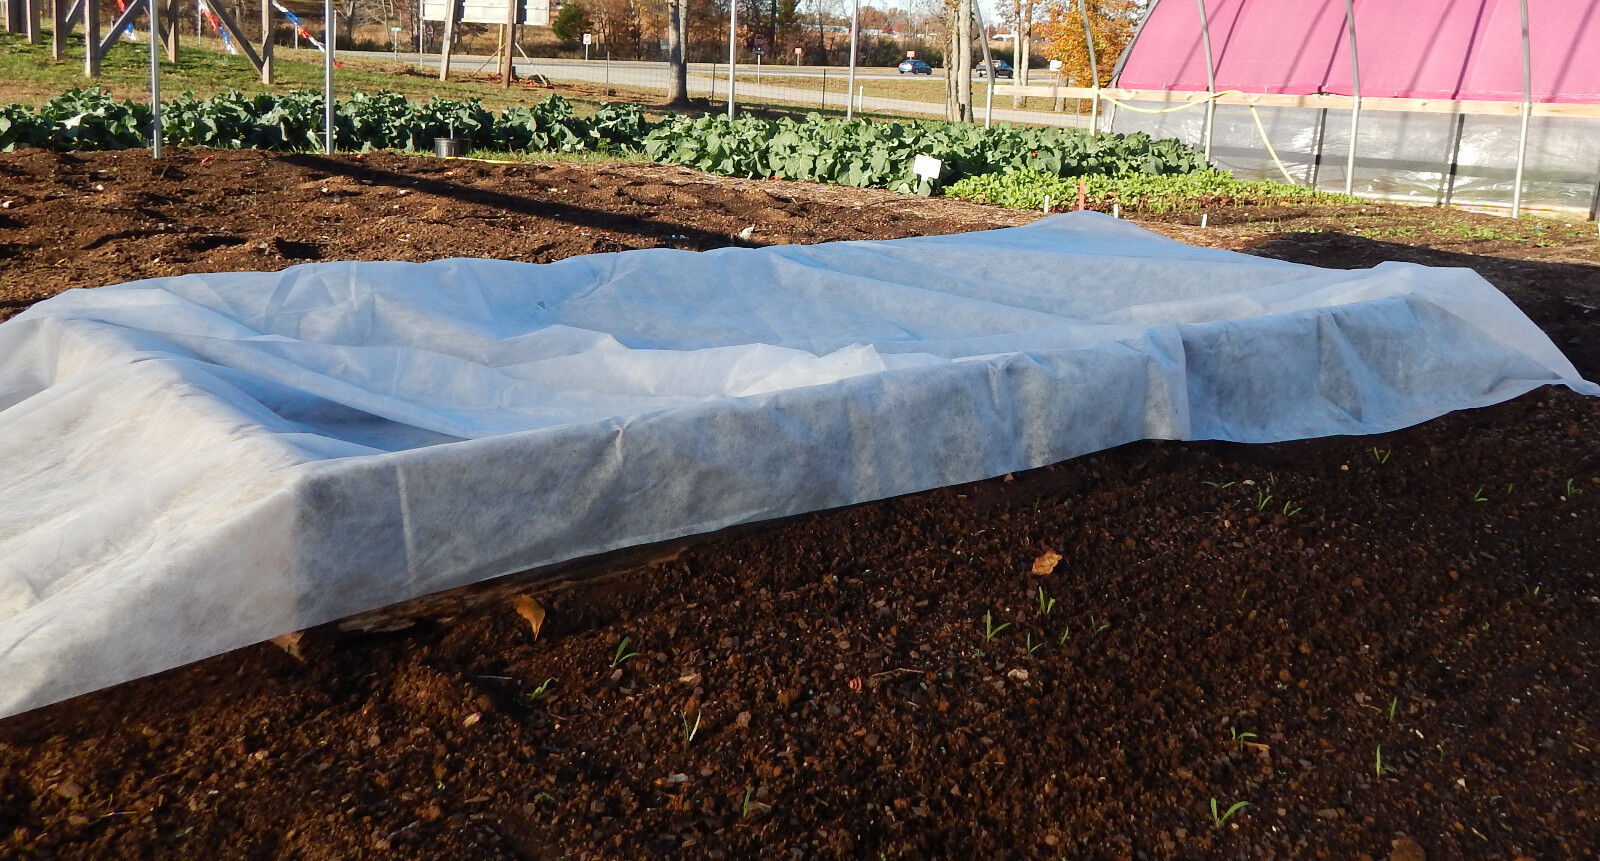 AG-05 Floating Row Crop Cover / Frost Blanket / Garden Fabric 6' x 250' - 1 Each